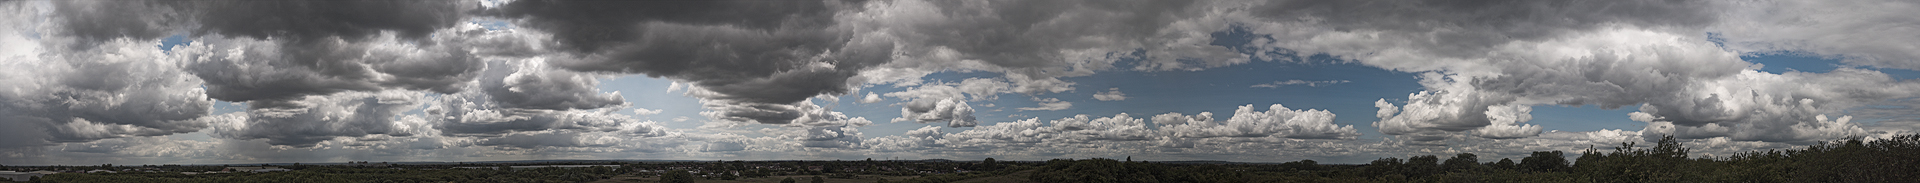 Panorama - Bedfont Cloud Panorama Large by Nicholas M Vivian